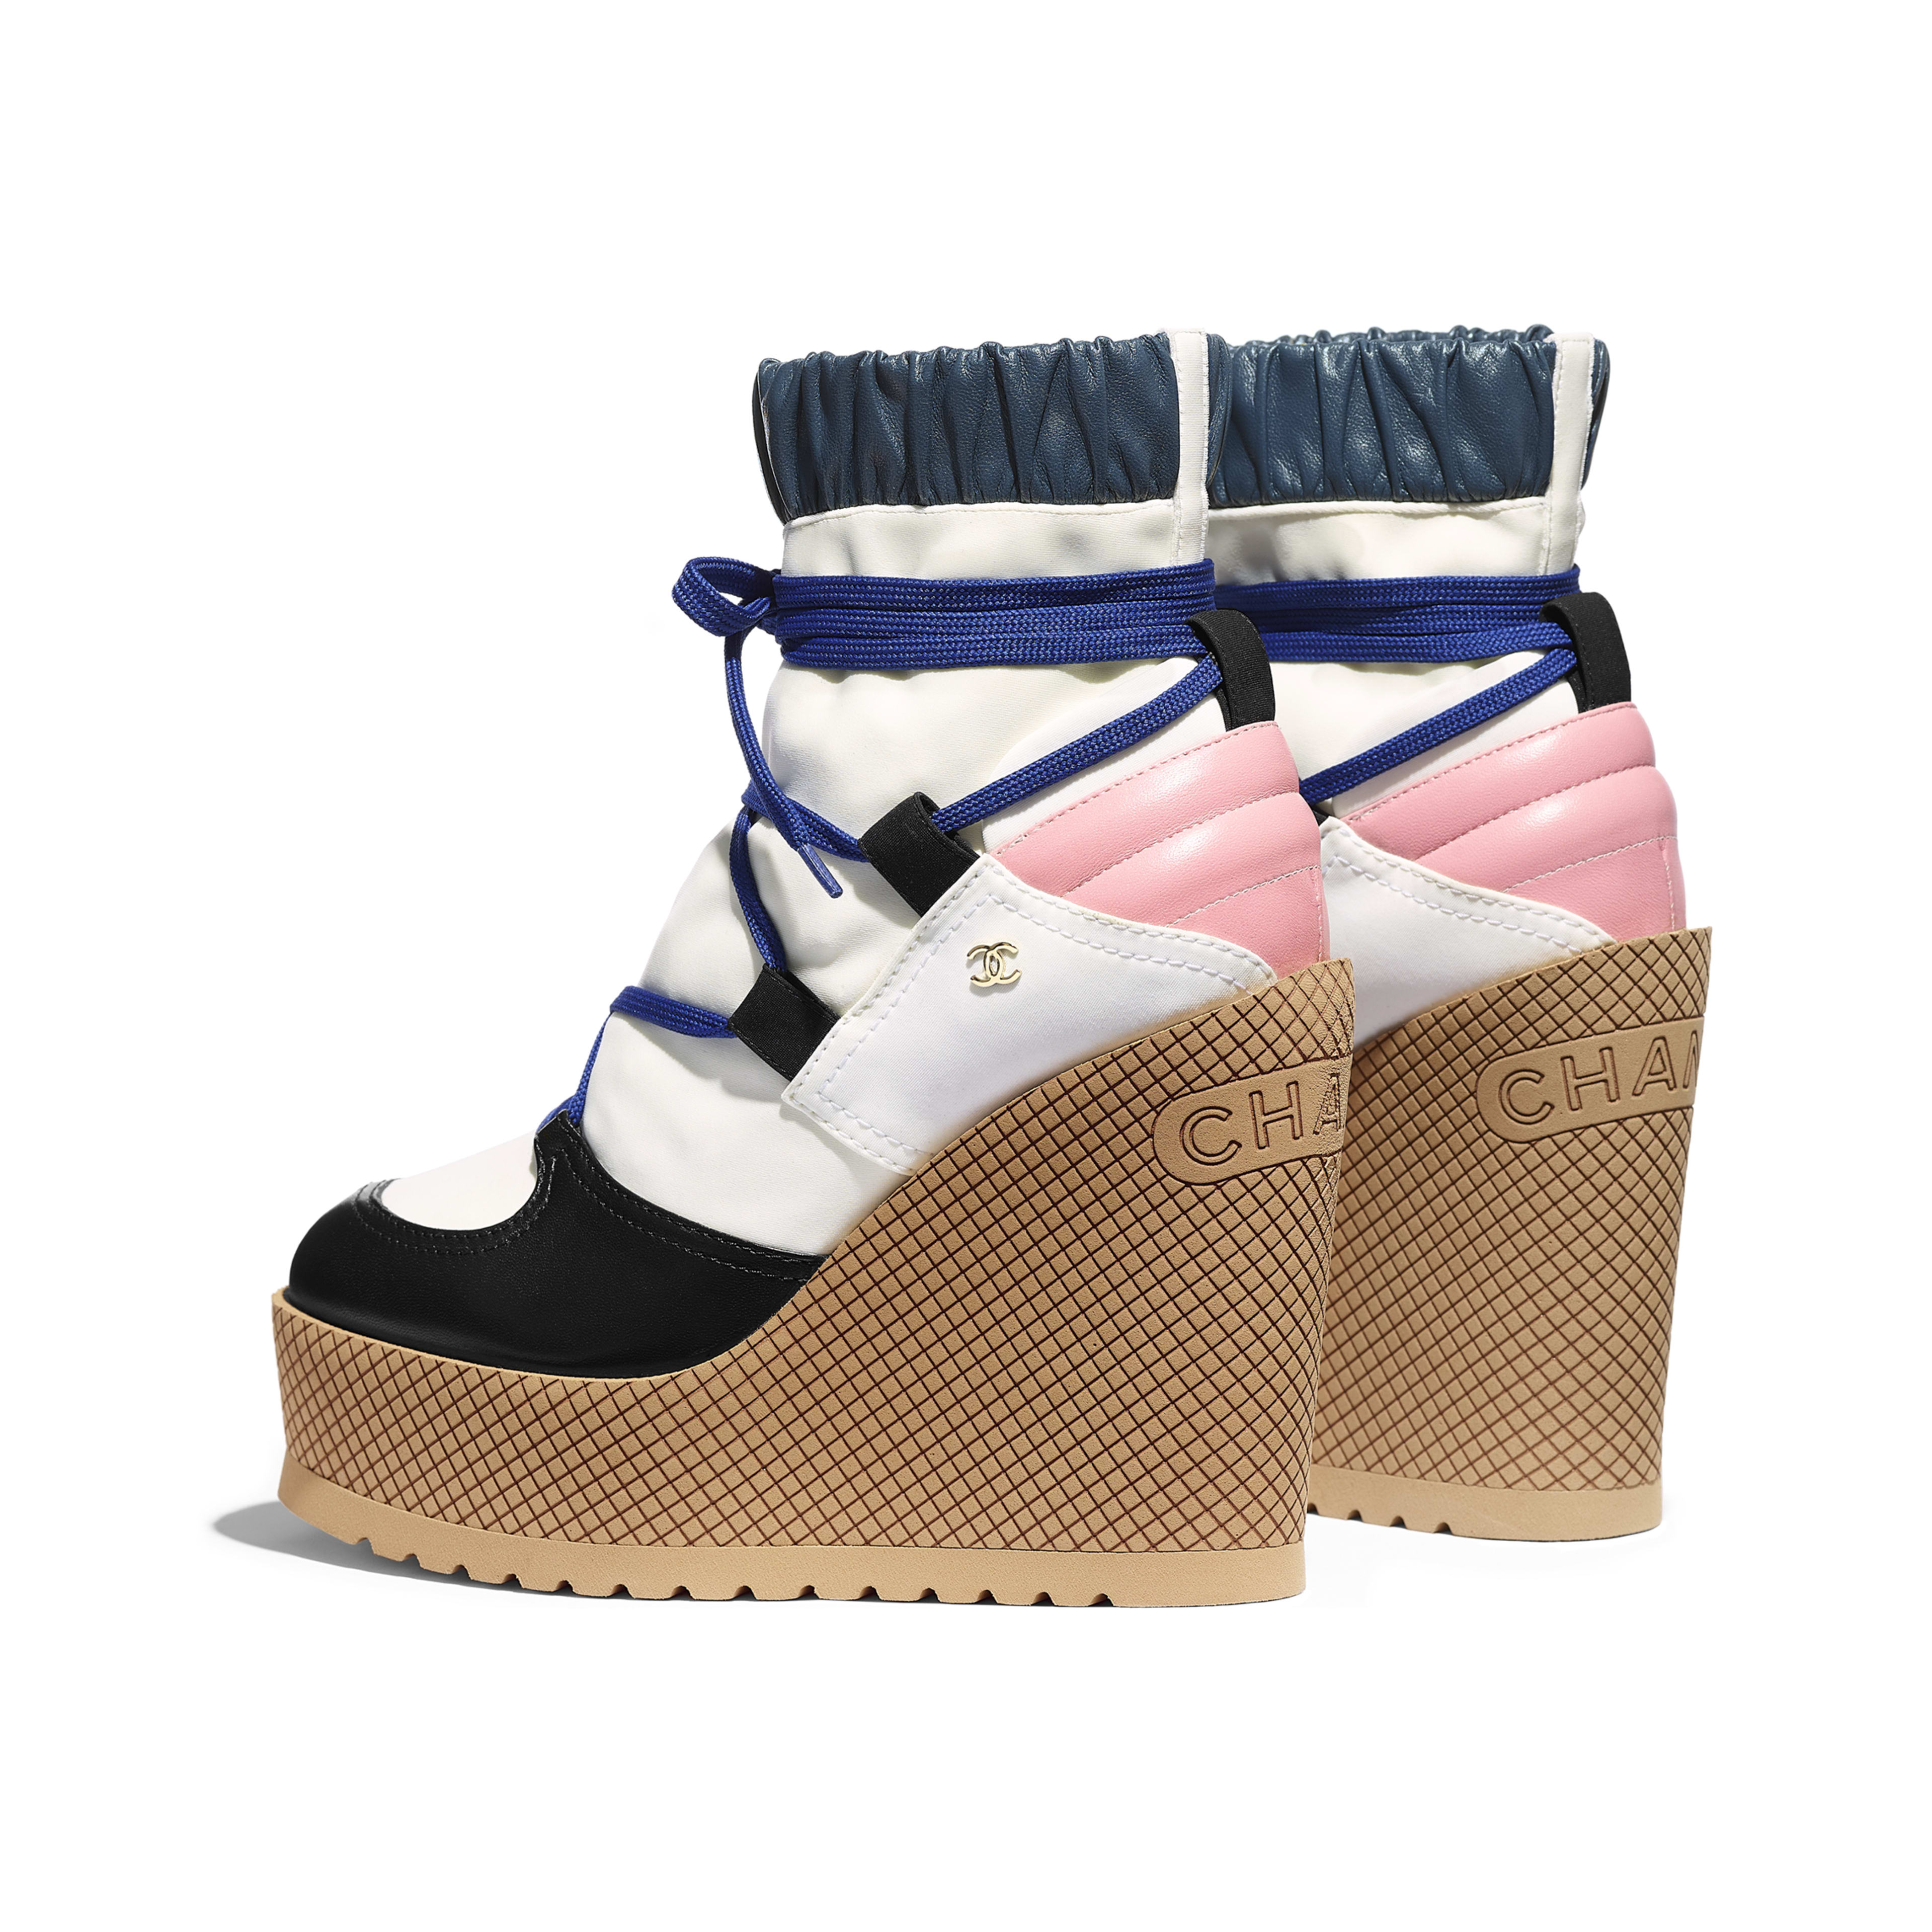 Lace-Ups - Ivory, Rose, Blue & Black - Lambskin & Mixed Fibers - Other view - see full sized version